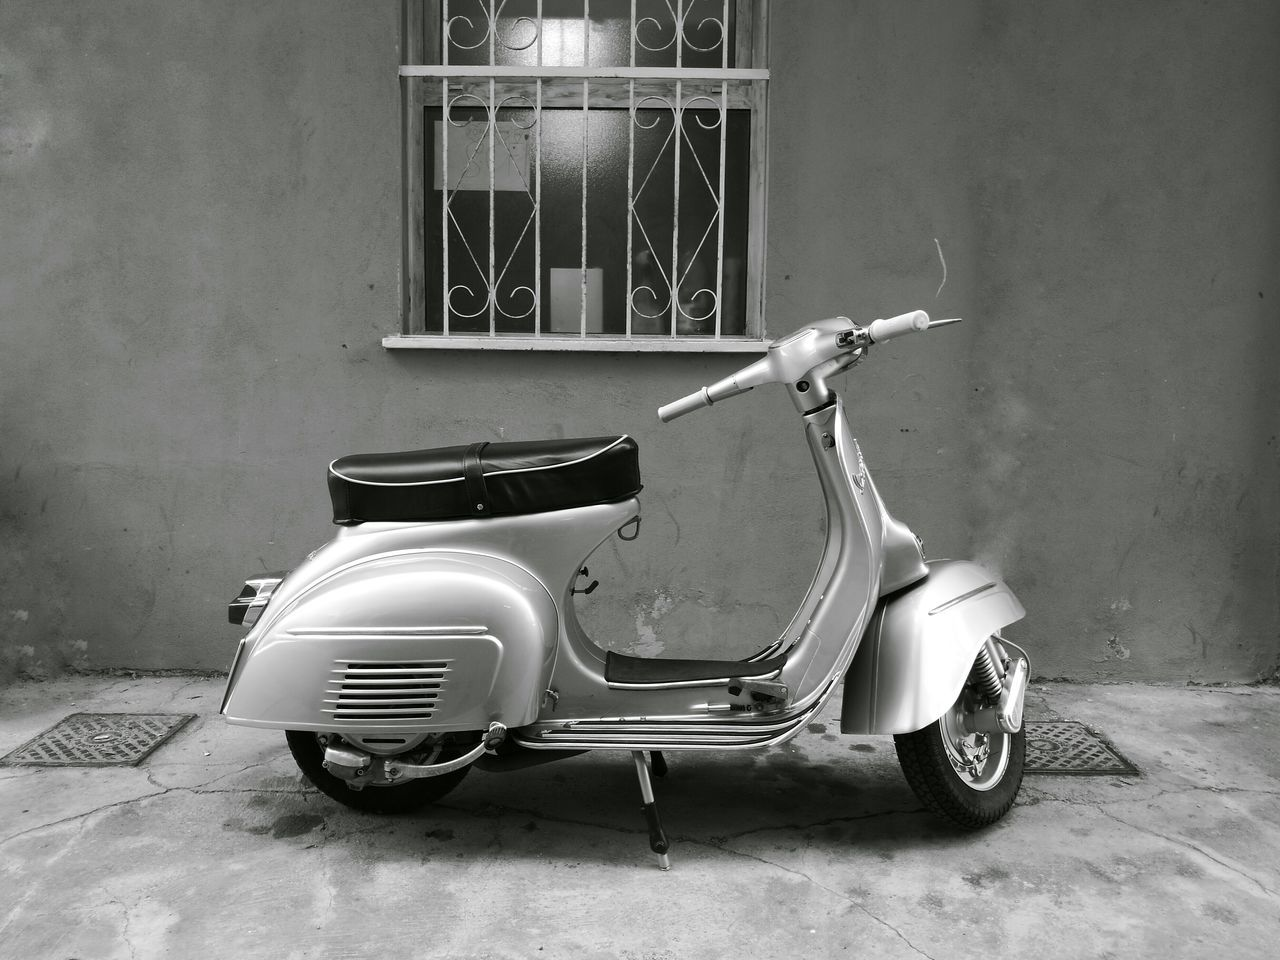 the legendary Vespa Architecture Building Exterior Design Italy Land Vehicle Made In Italy No People Nostalgic  Old Parked Retro Revival Scooter Stationary Transportation Vespa Vintage